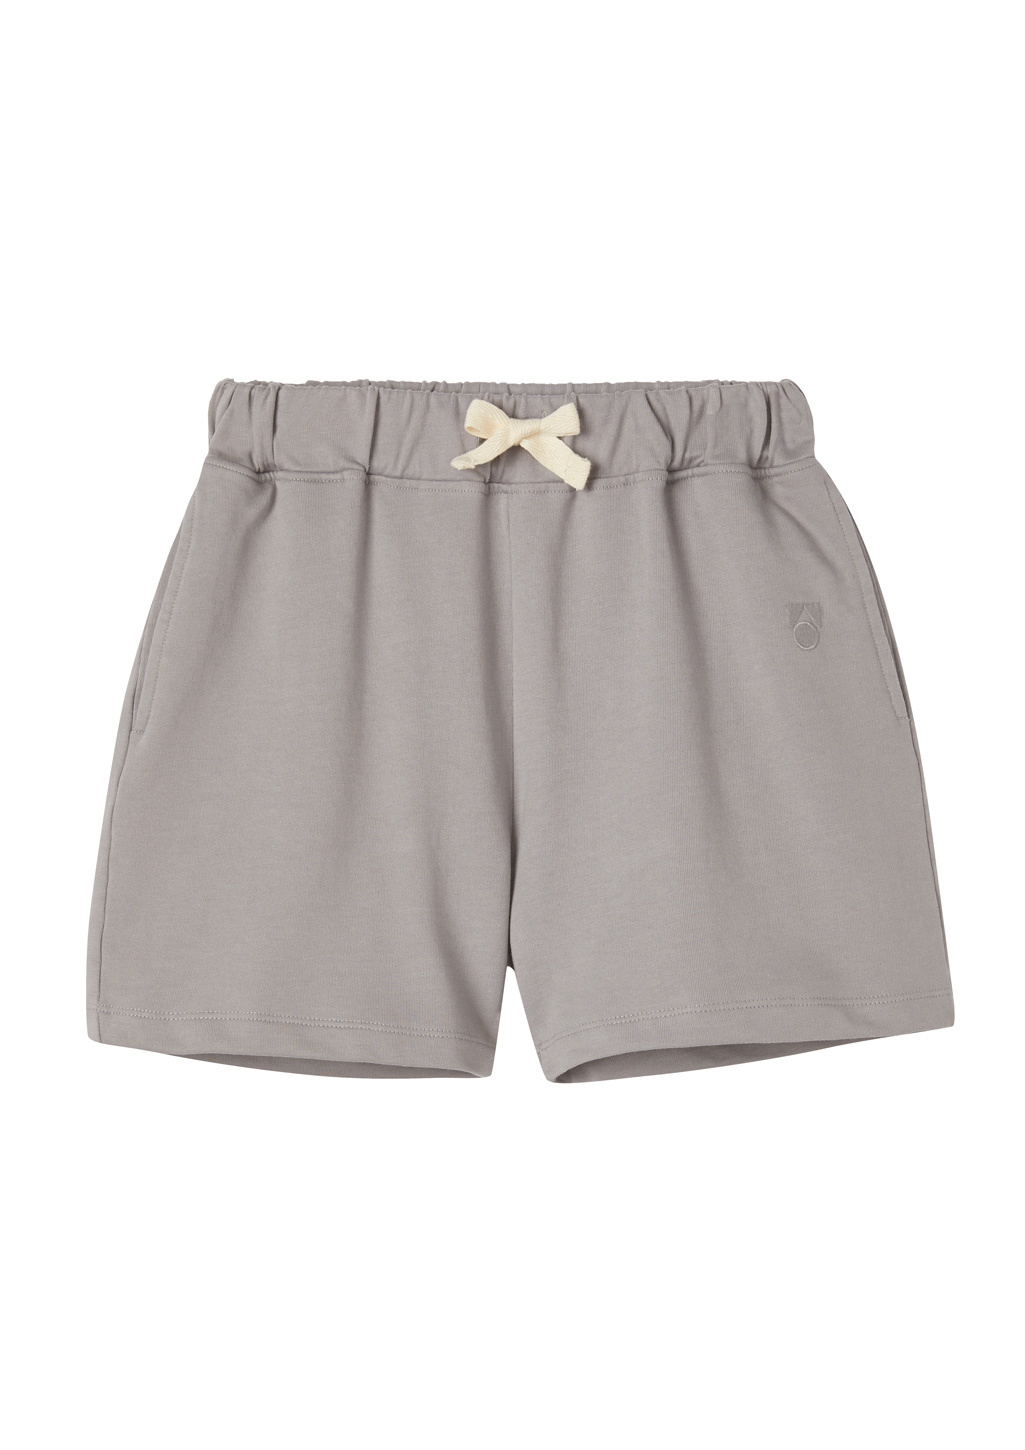 Baggy short - Silver Filigree-1